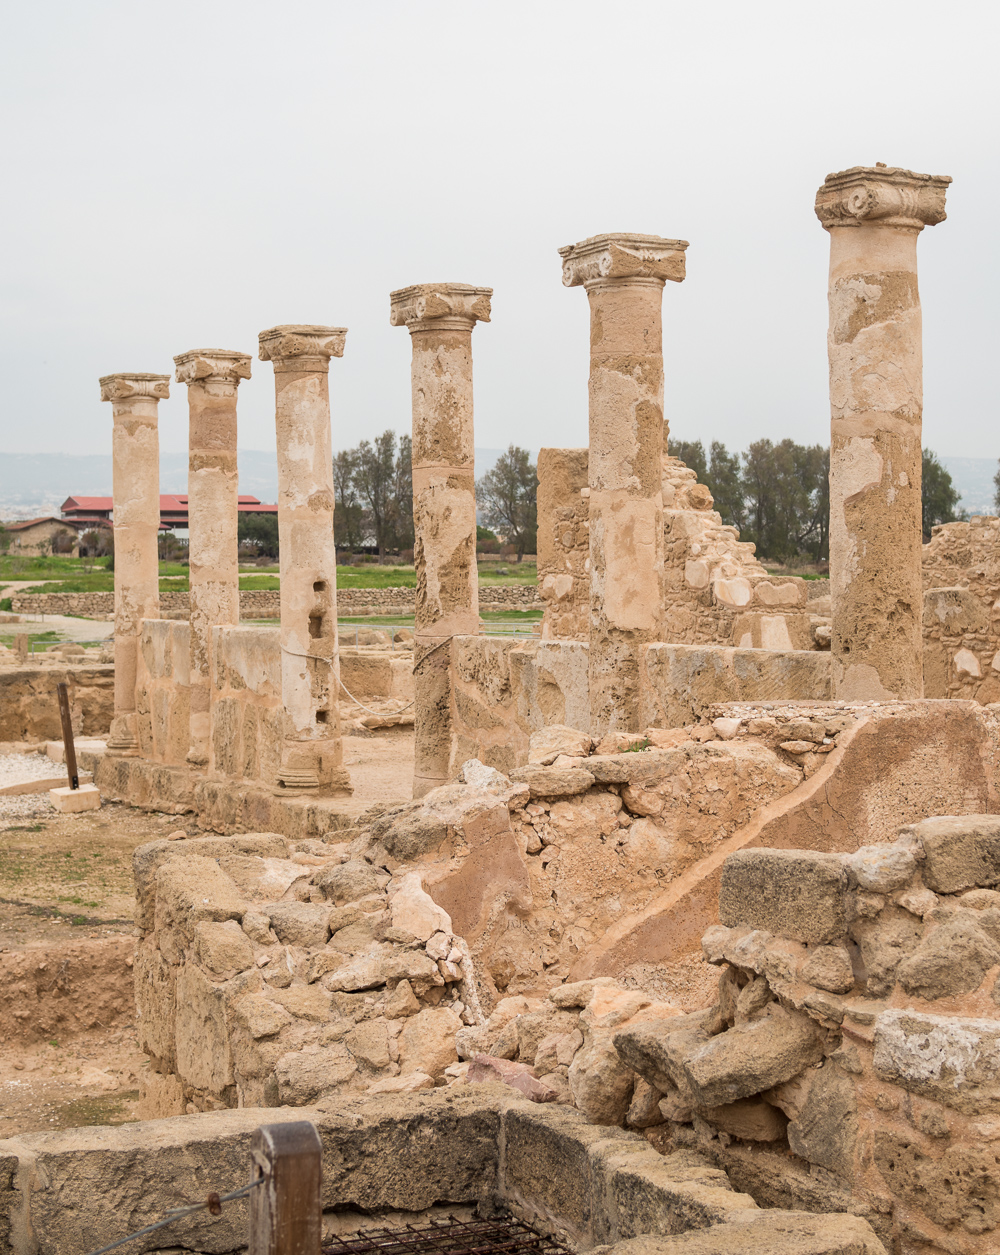 Paphos archeological ruins